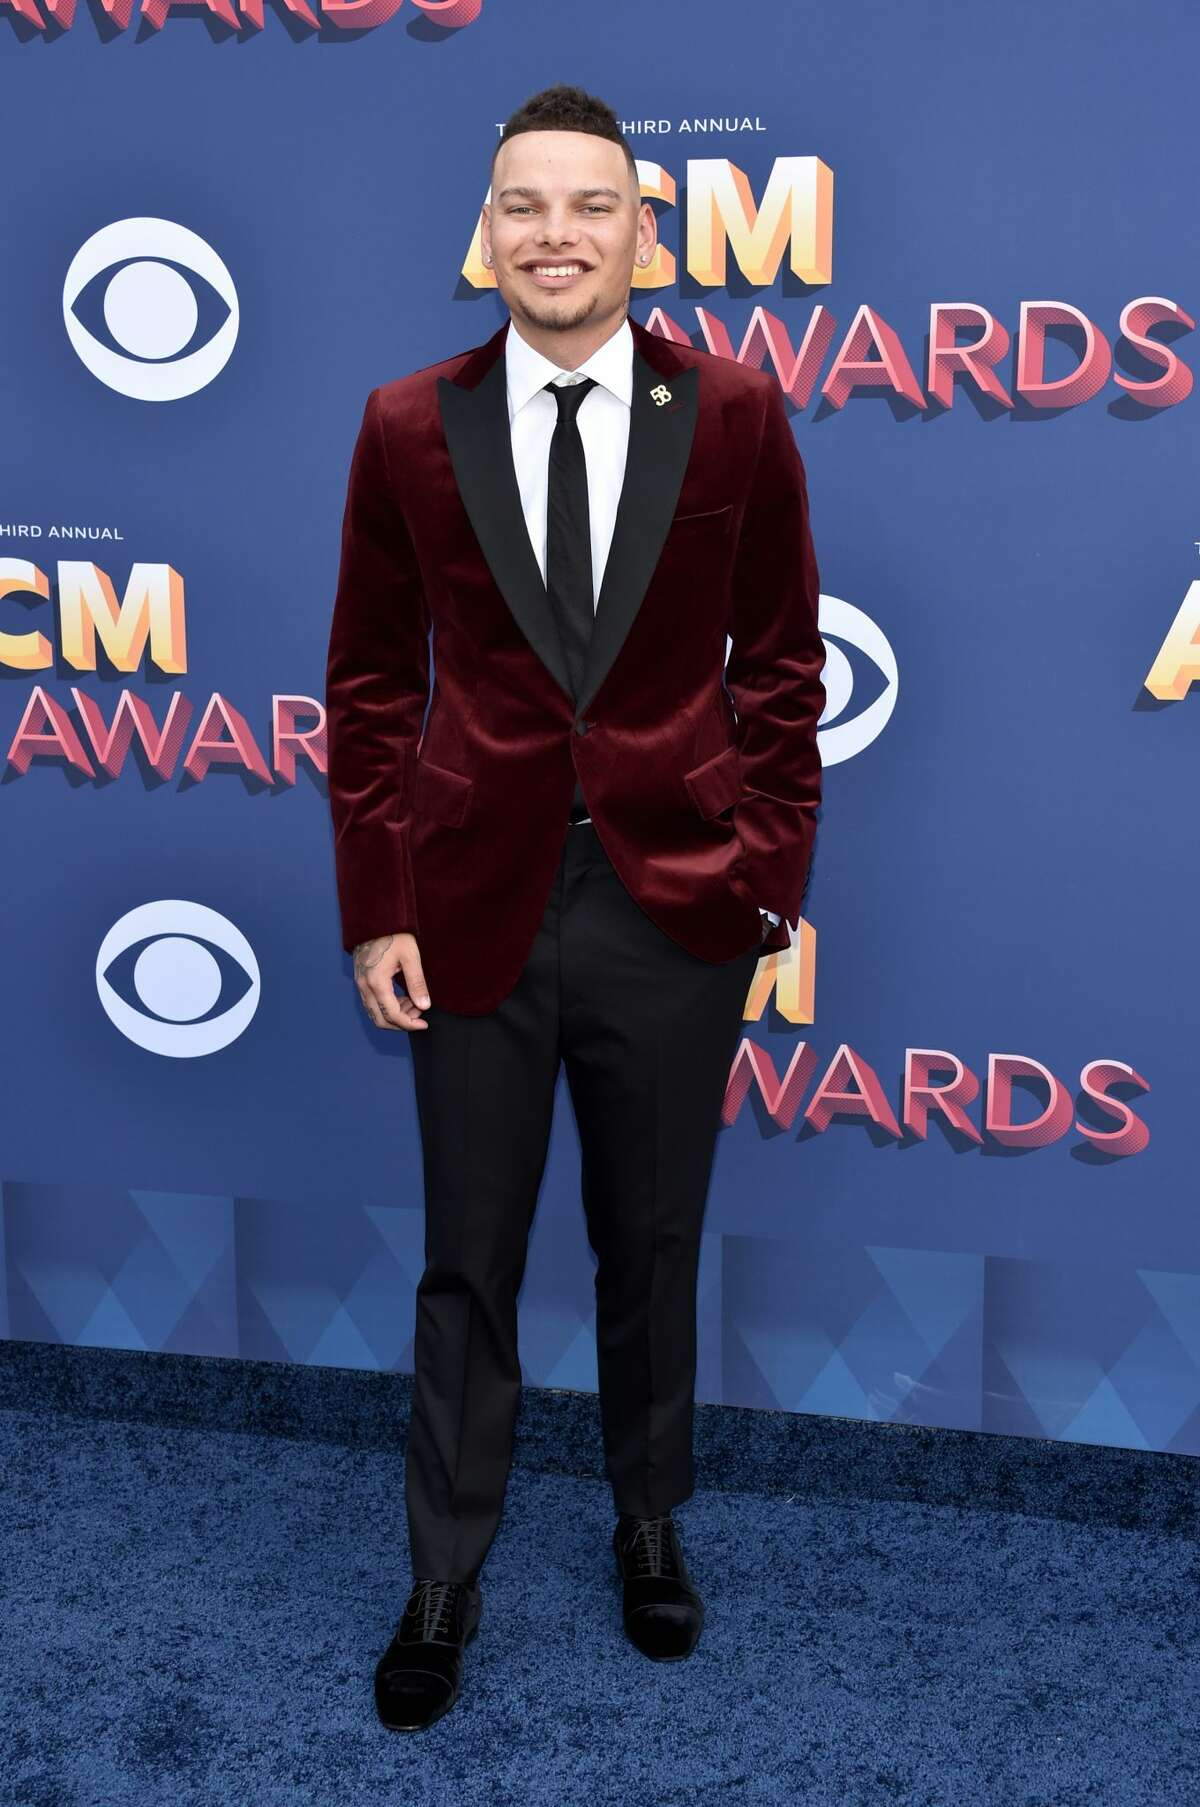 LAS VEGAS, NV - APRIL 15: Kane Brown attends the 53rd Academy of Country Music Awards at MGM Grand Garden Arena on April 15, 2018 in Las Vegas, Nevada. (Photo by John Shearer/WireImage)